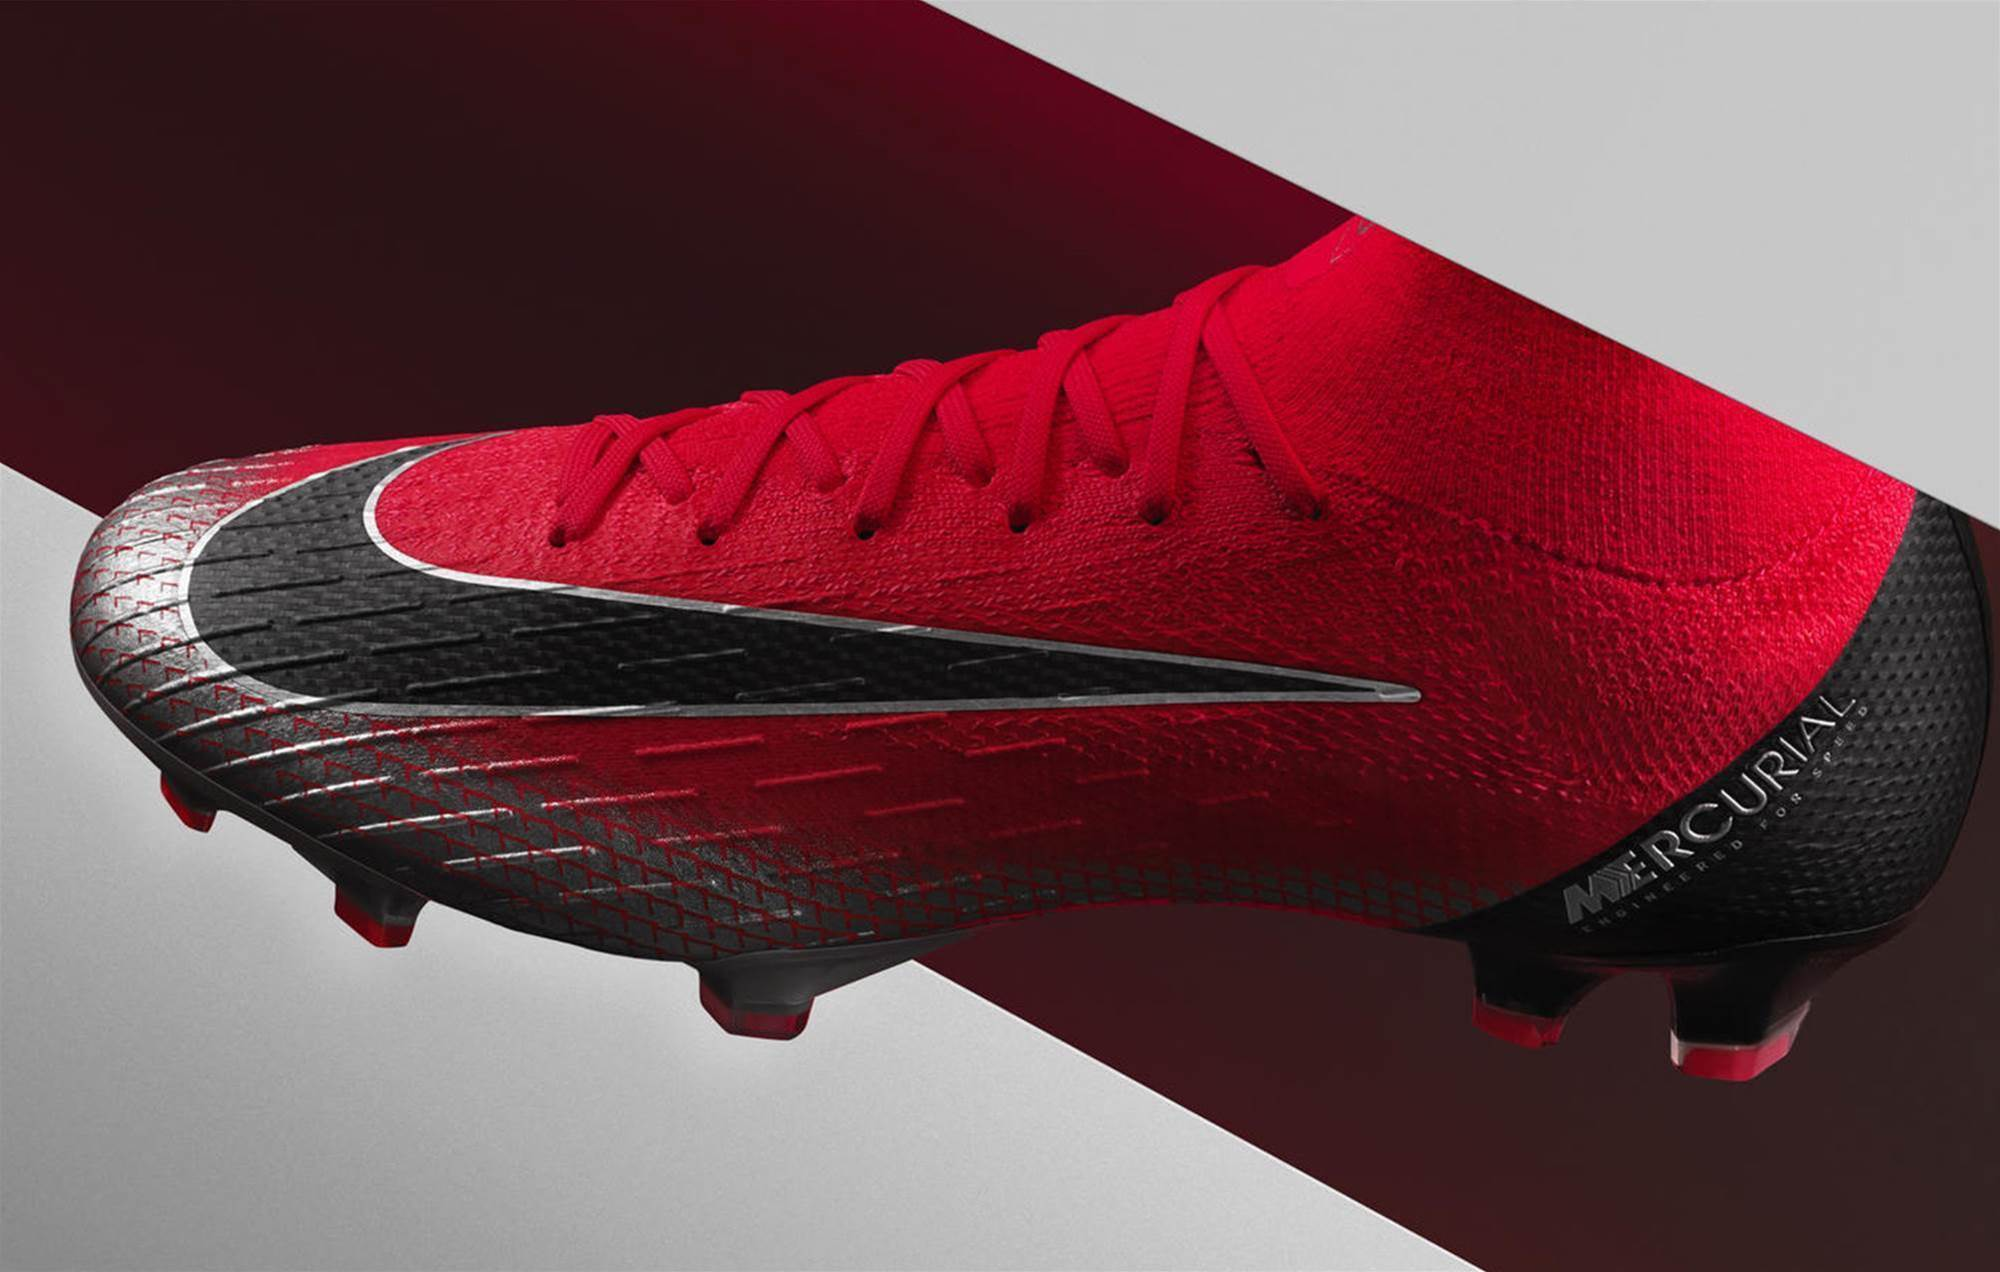 Nike's last ever CR7 Chapters 'Built On Dreams' boot